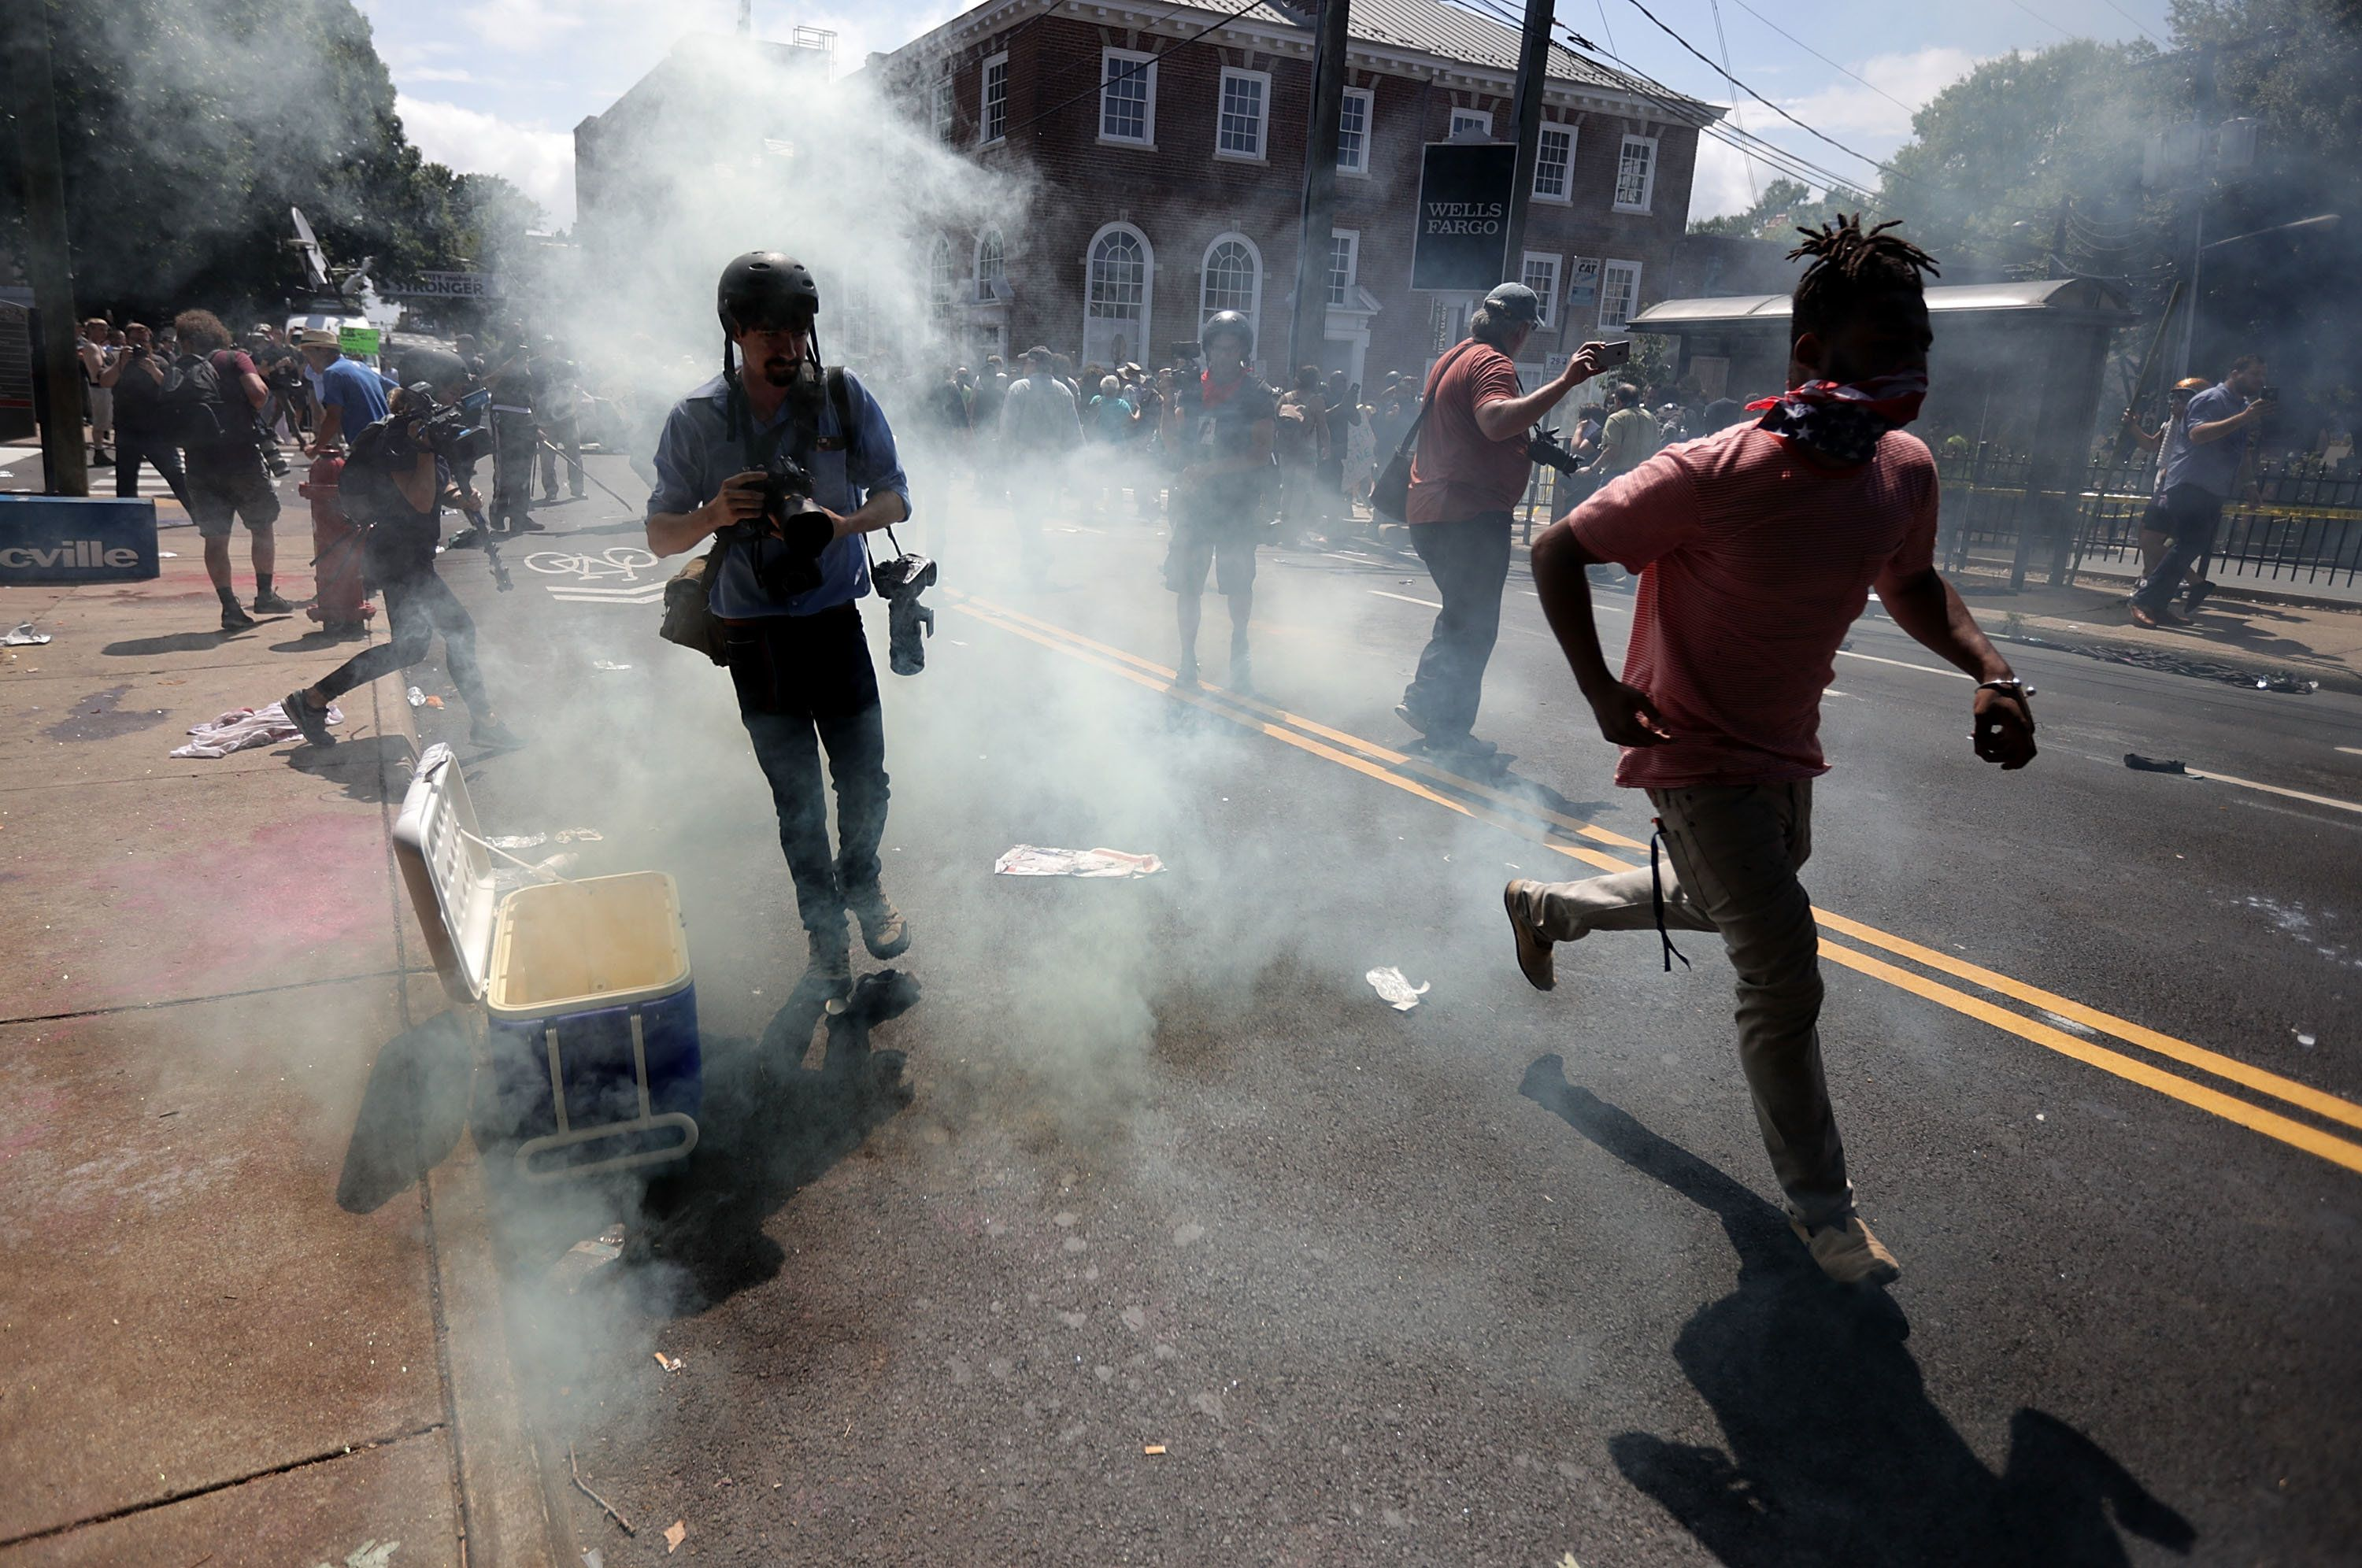 CHARLOTTESVILLE, VA - AUGUST 12:  Protesters and journalists pull back after tear gas was used on the outskirts of Emancipation Park during the Unite the Right rally August 12, 2017 in Charlottesville, Virginia. After clashes with anti-facist protesters and police the rally was declared an unlawful gathering and people were forced out of Lee Park, where a statue of Confederate General Robert E. Lee is slated to be removed.  (Photo by Chip Somodevilla/Getty Images)